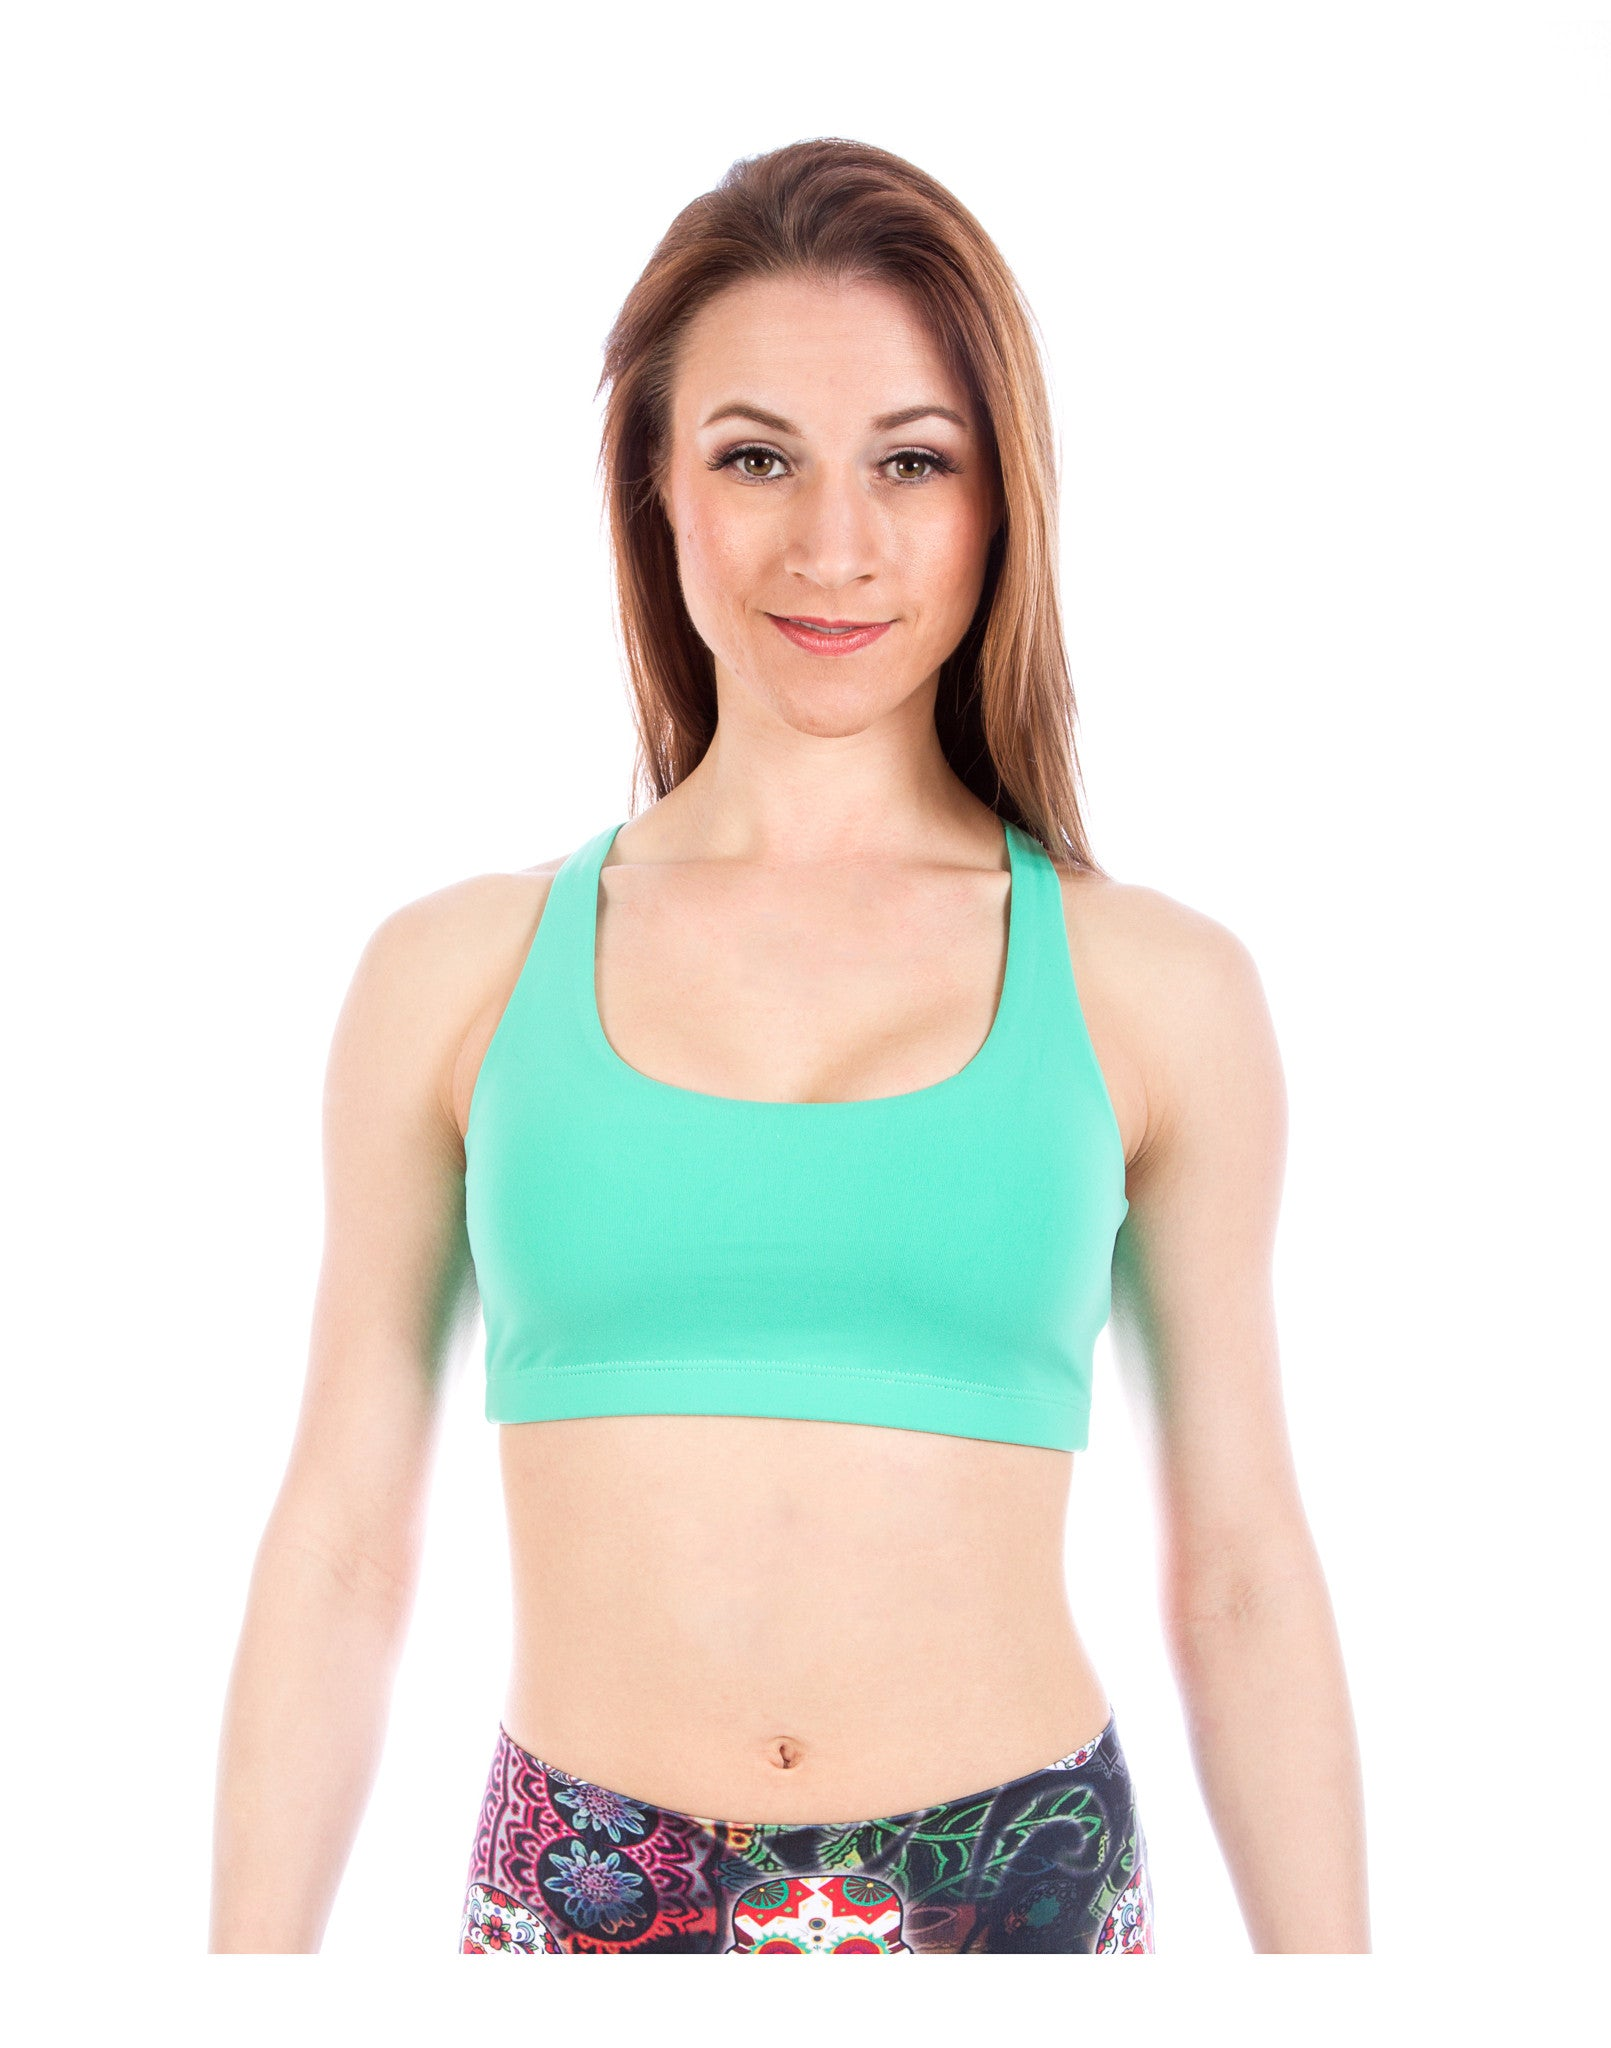 Sports Bra - Samantha Sports Bra LavaLoka - Green - buy it in every color